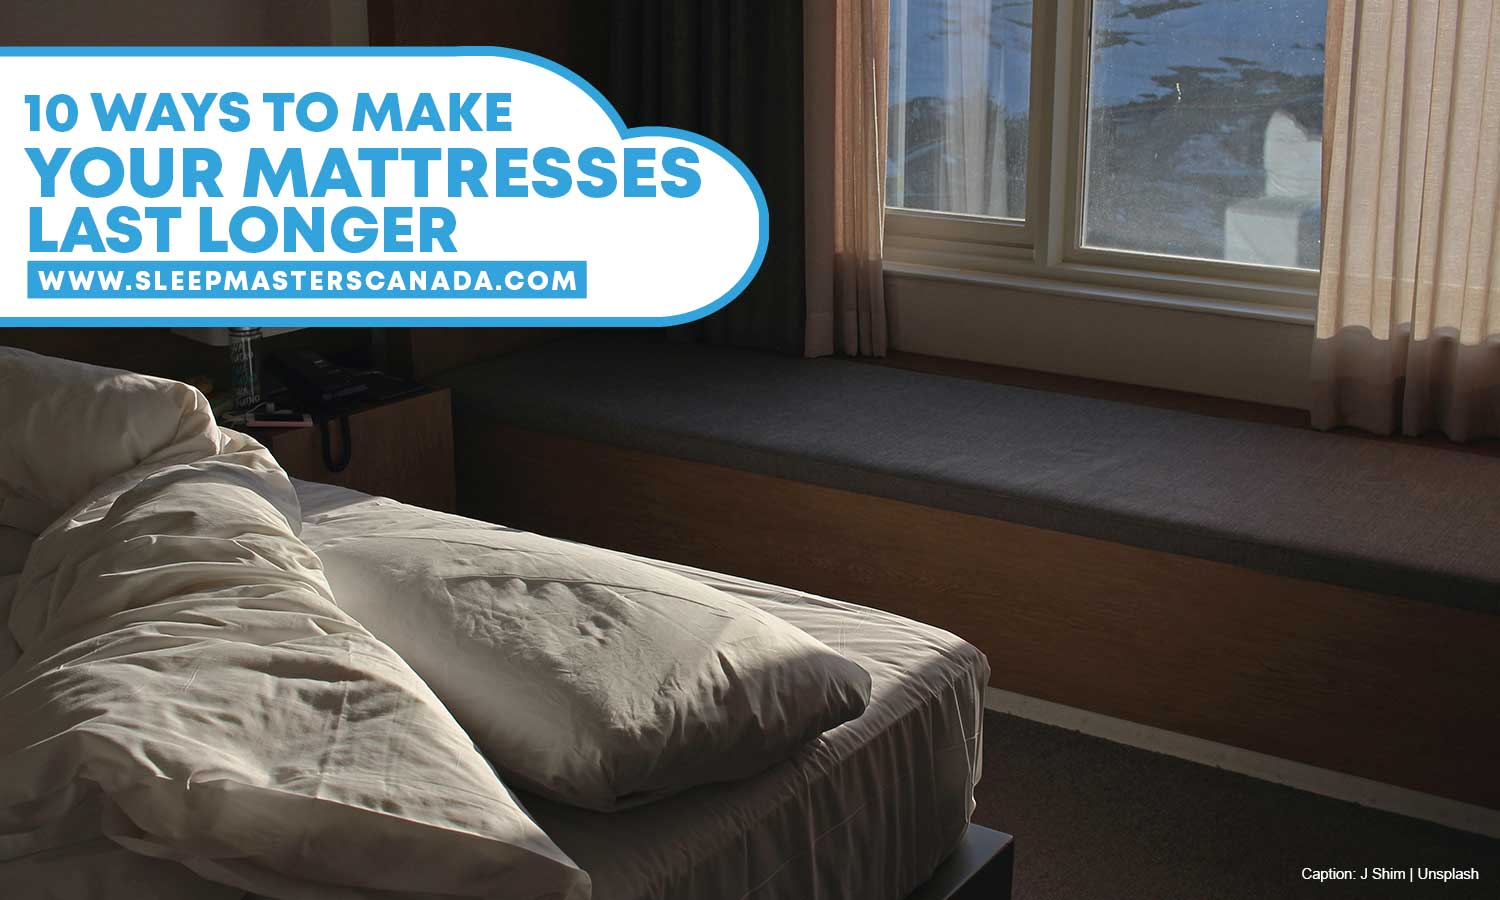 10 Ways to Make Your Mattresses